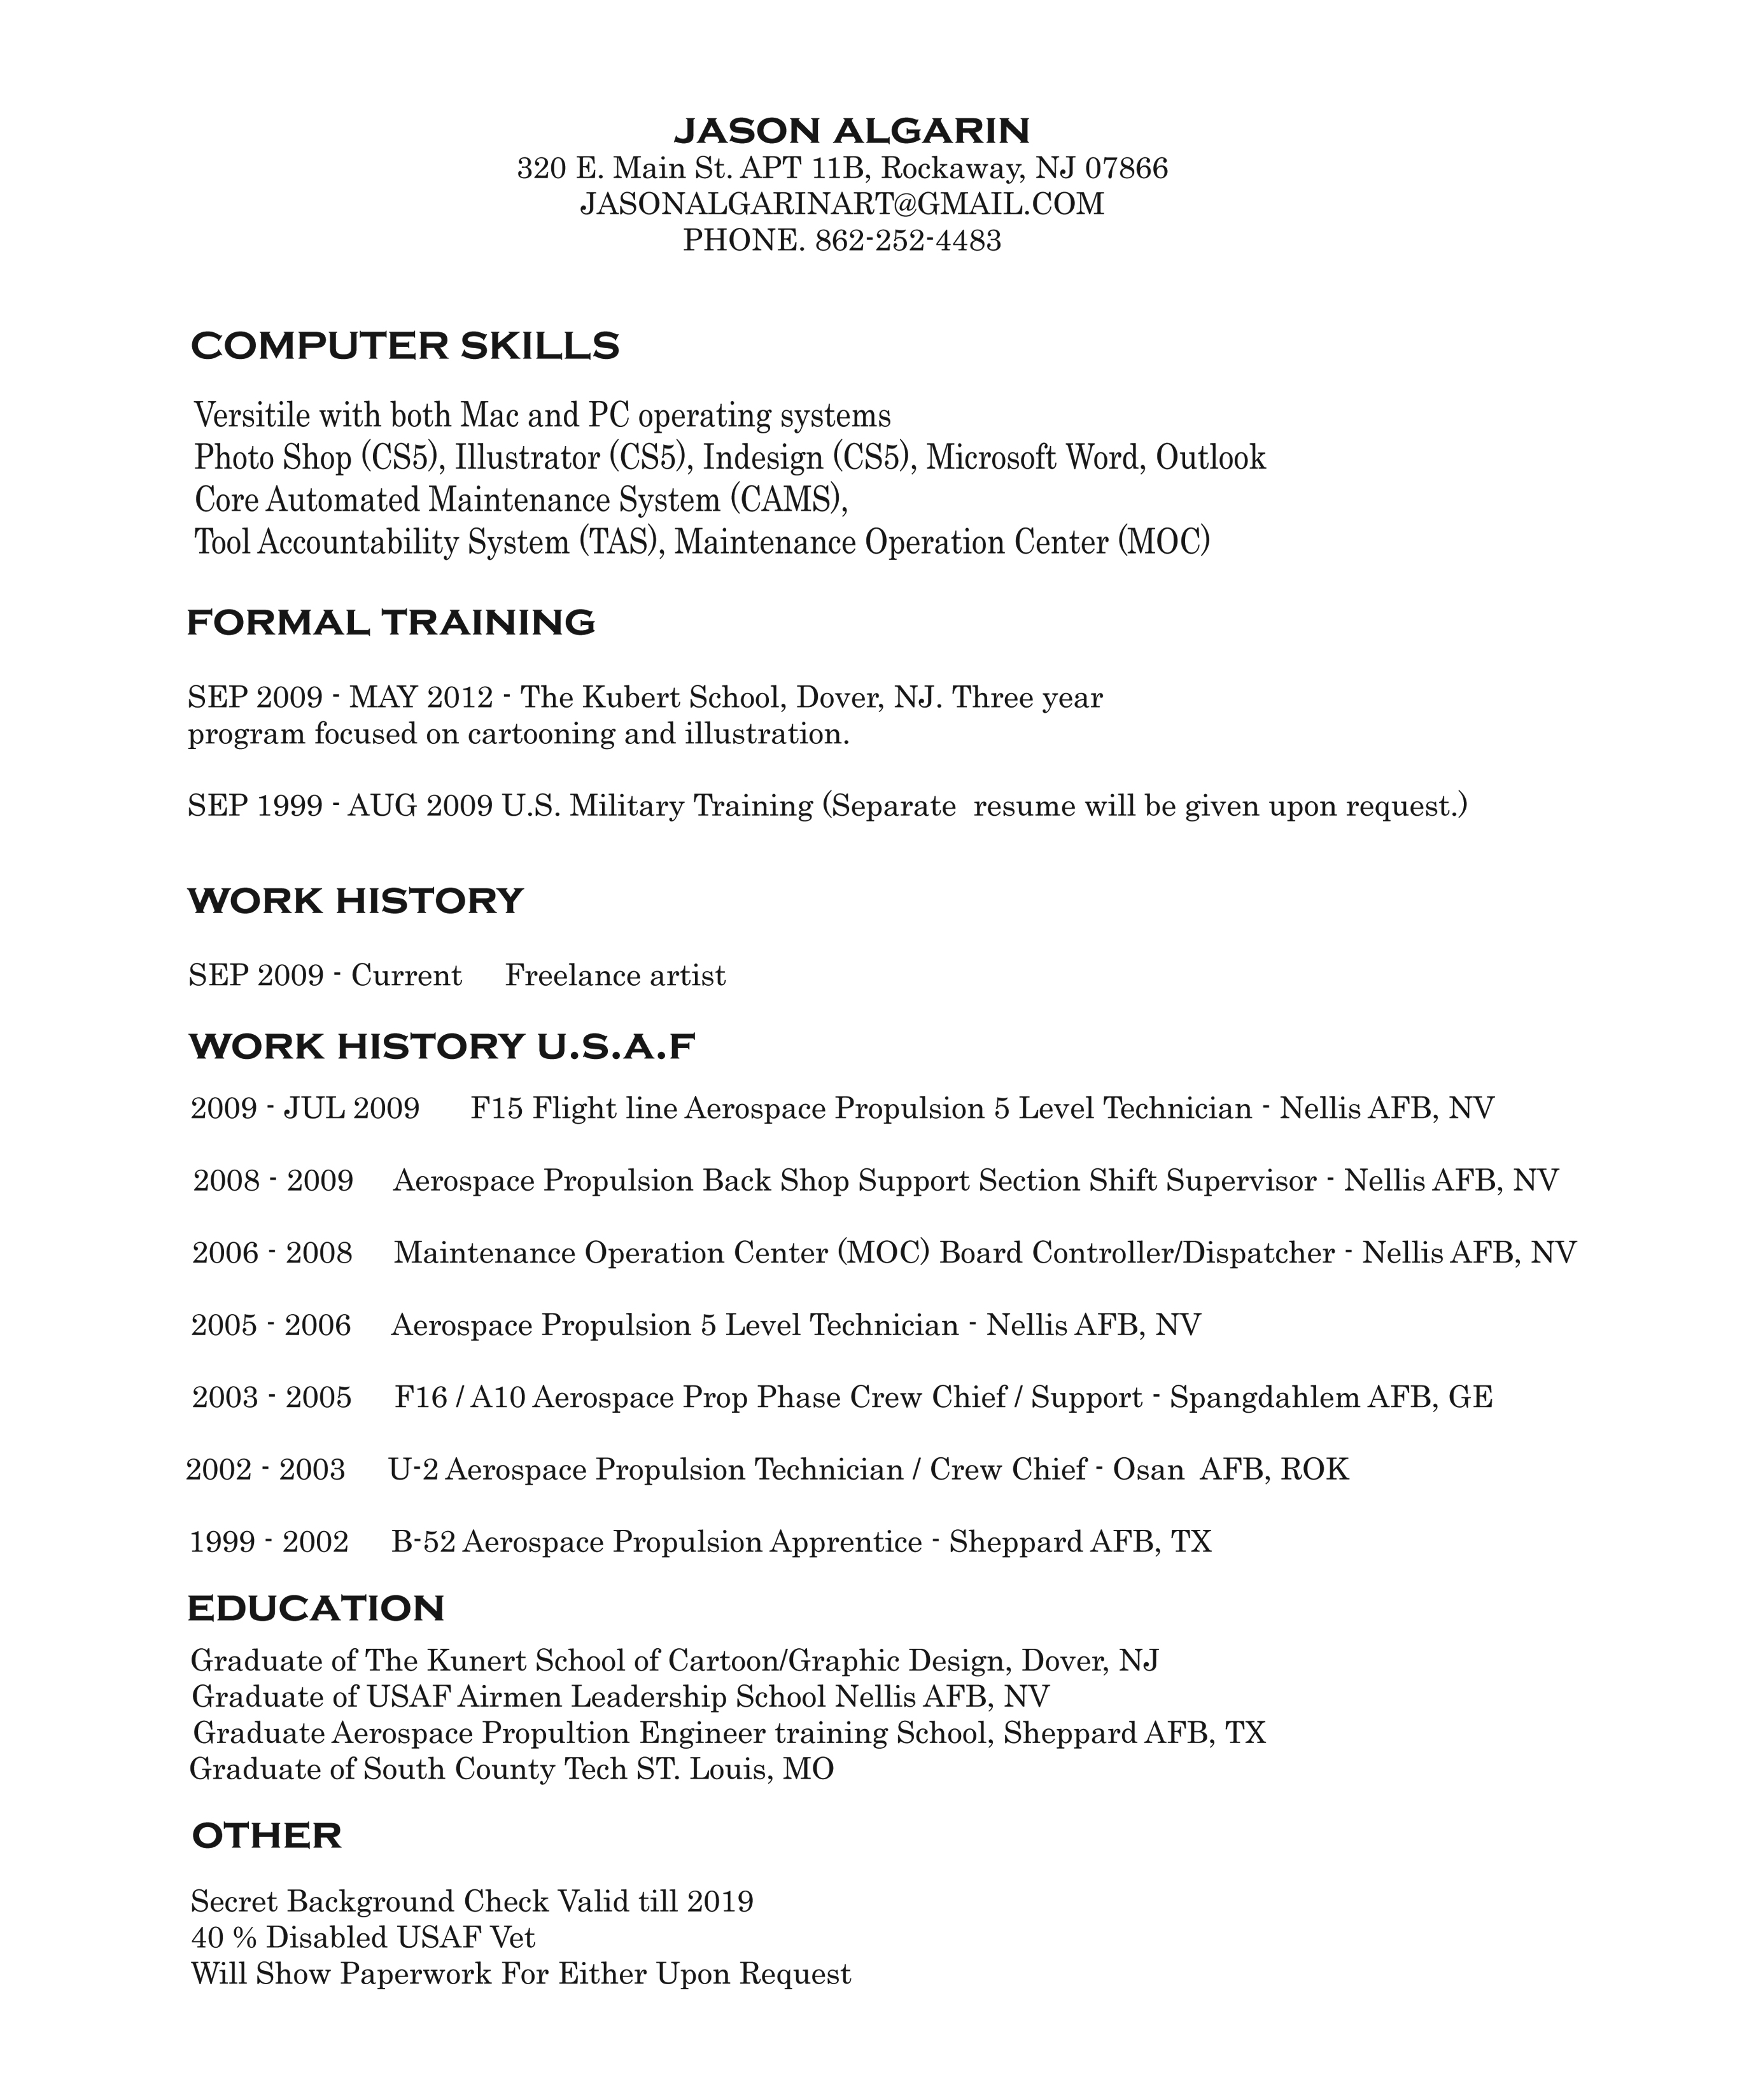 015 Art Resume Essays Formidable Essay Examples Conclusion School A2 Full